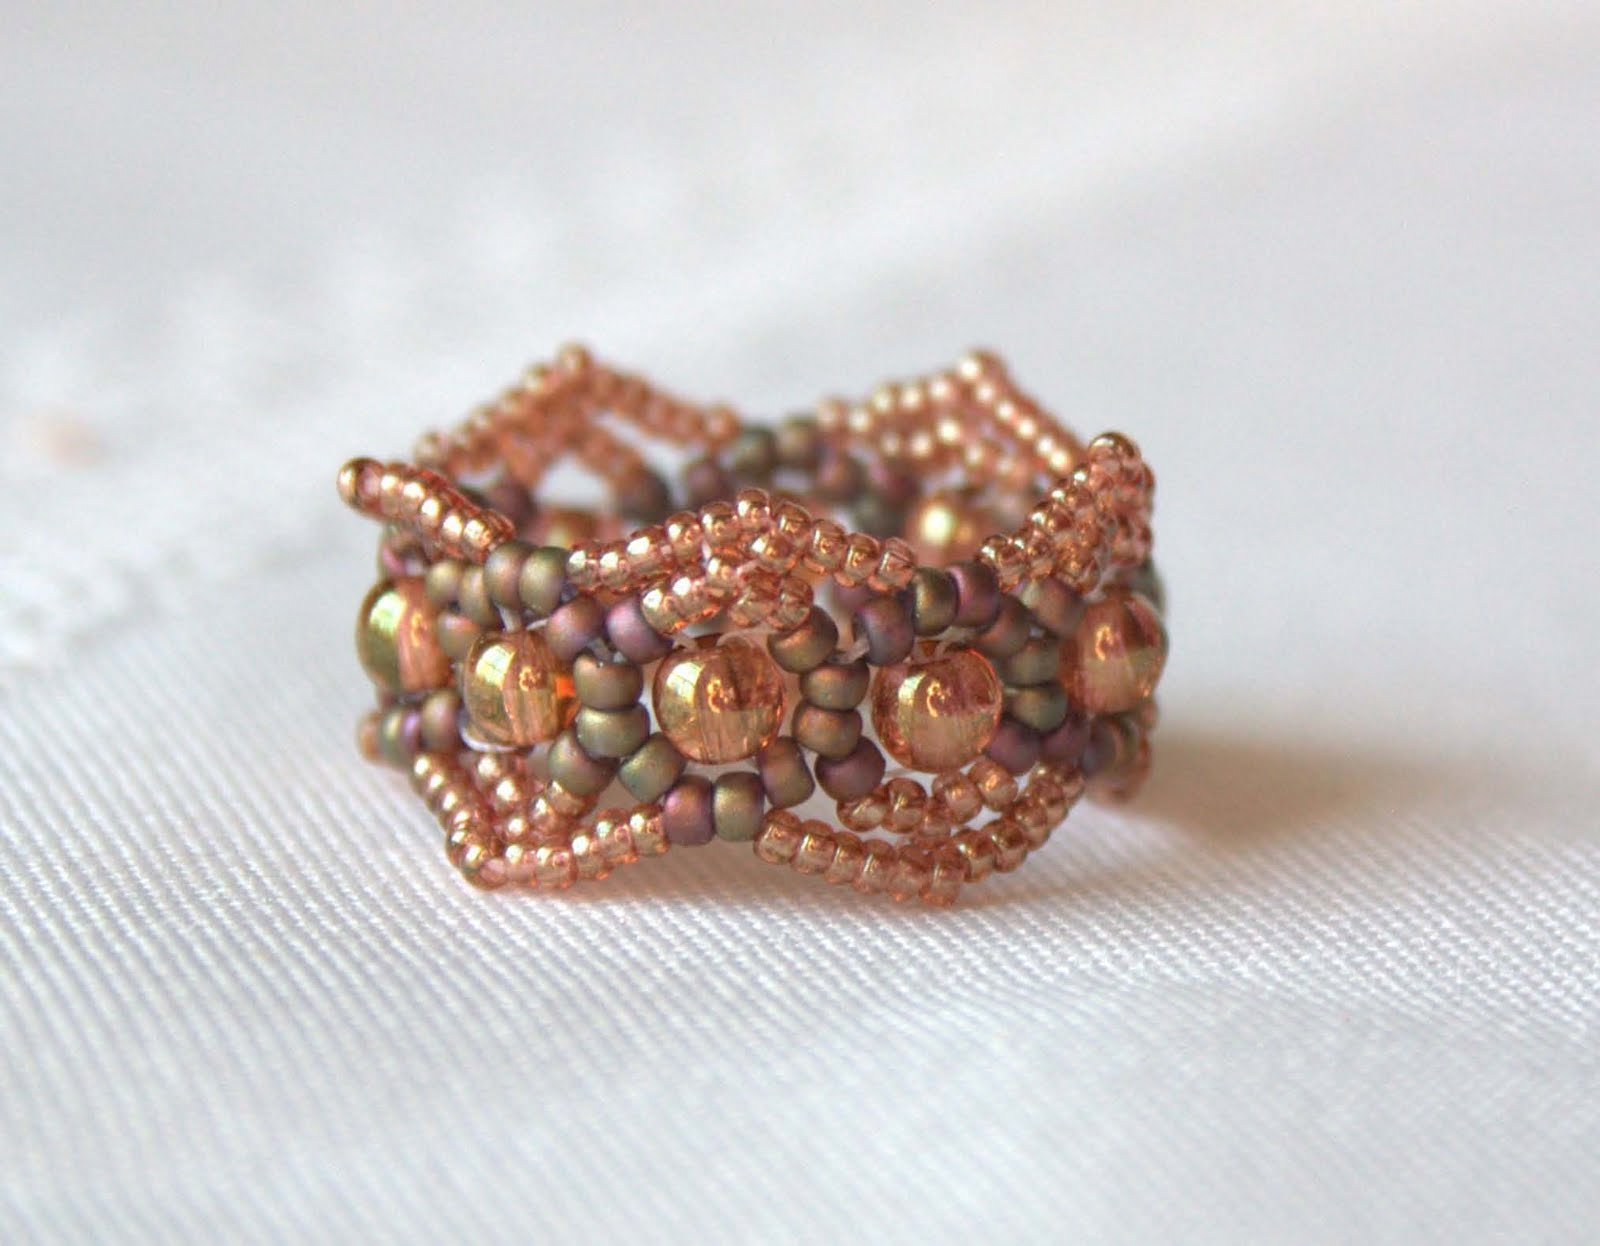 napkin knit mind beaded img my wire life rings